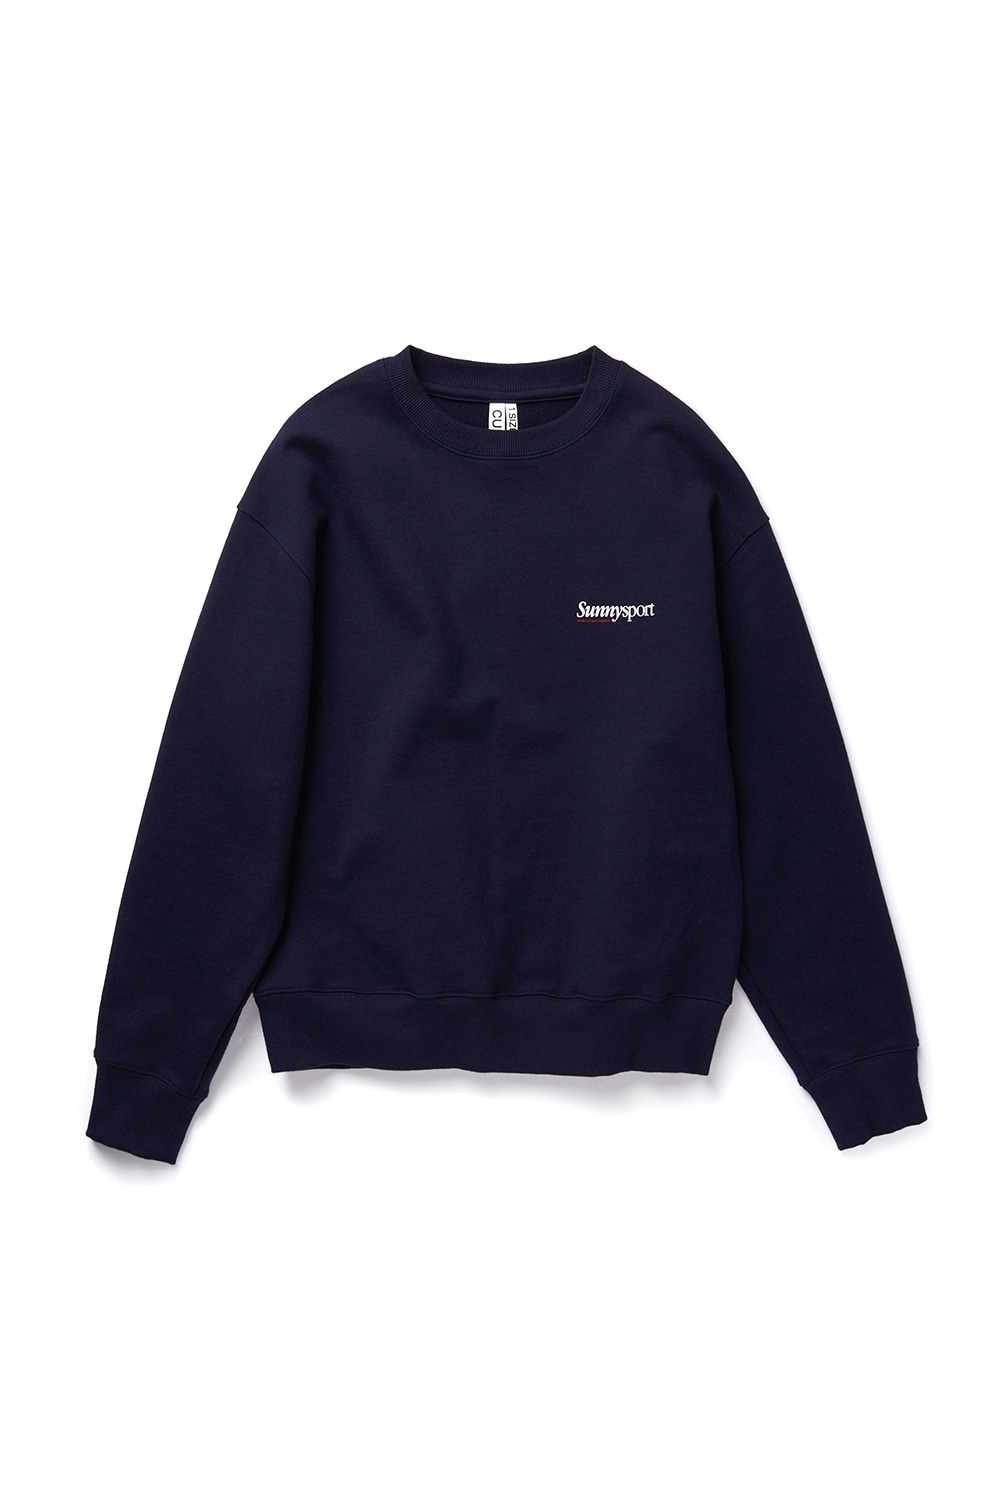 SUNNYSPORT CREWNECK [DEEP NAVY]